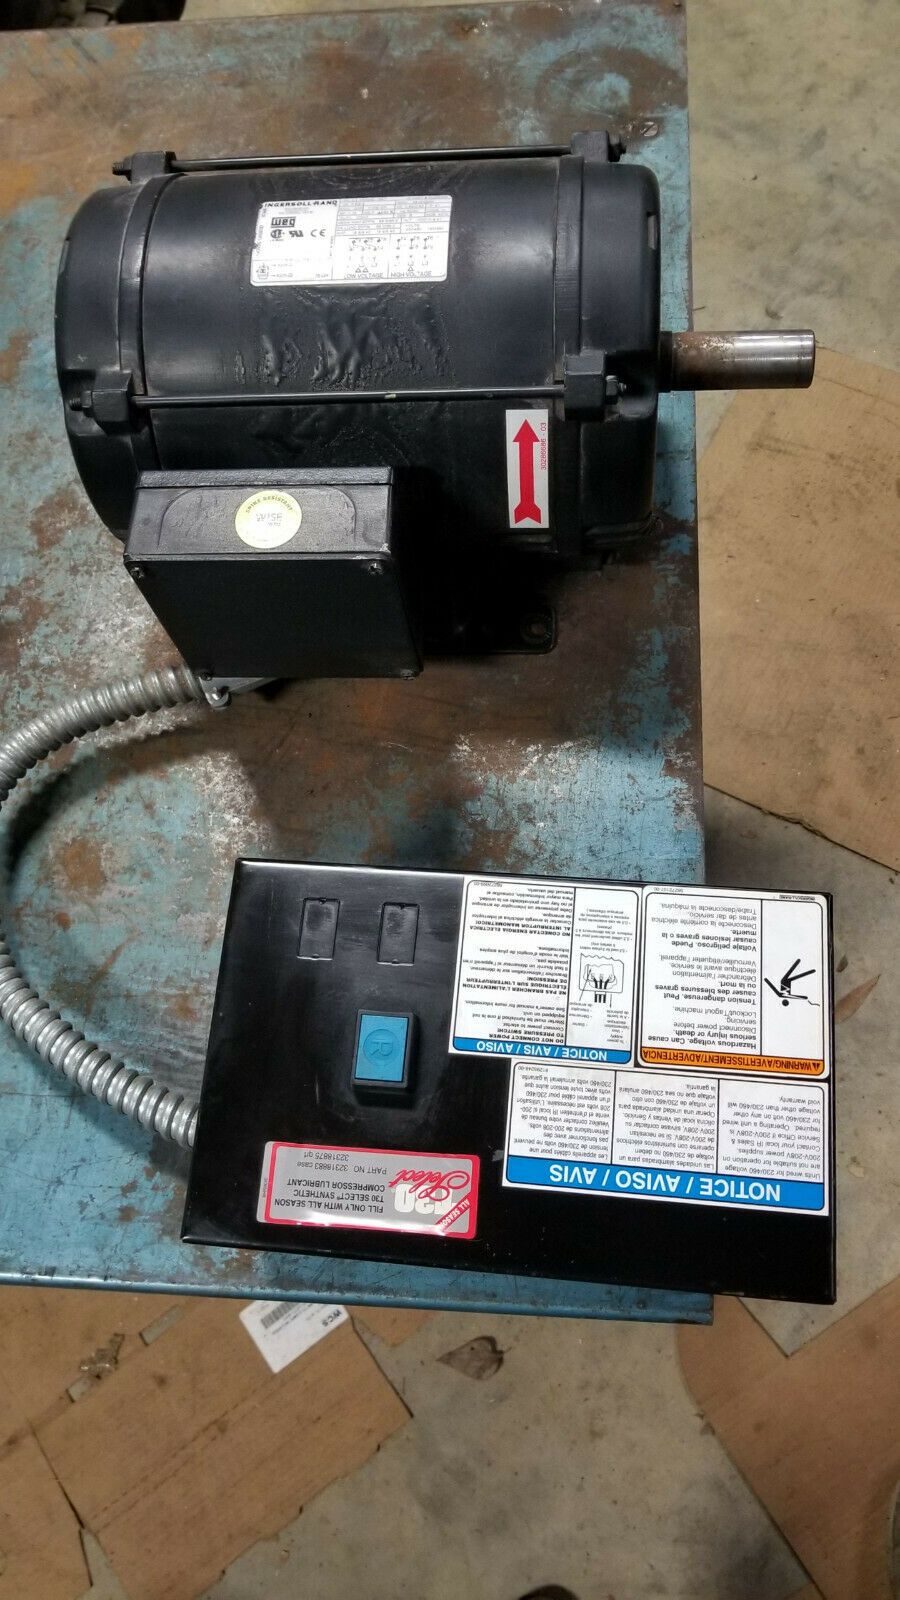 Ingersol Rand Air Compressor 7.5HP 3 phase motor and